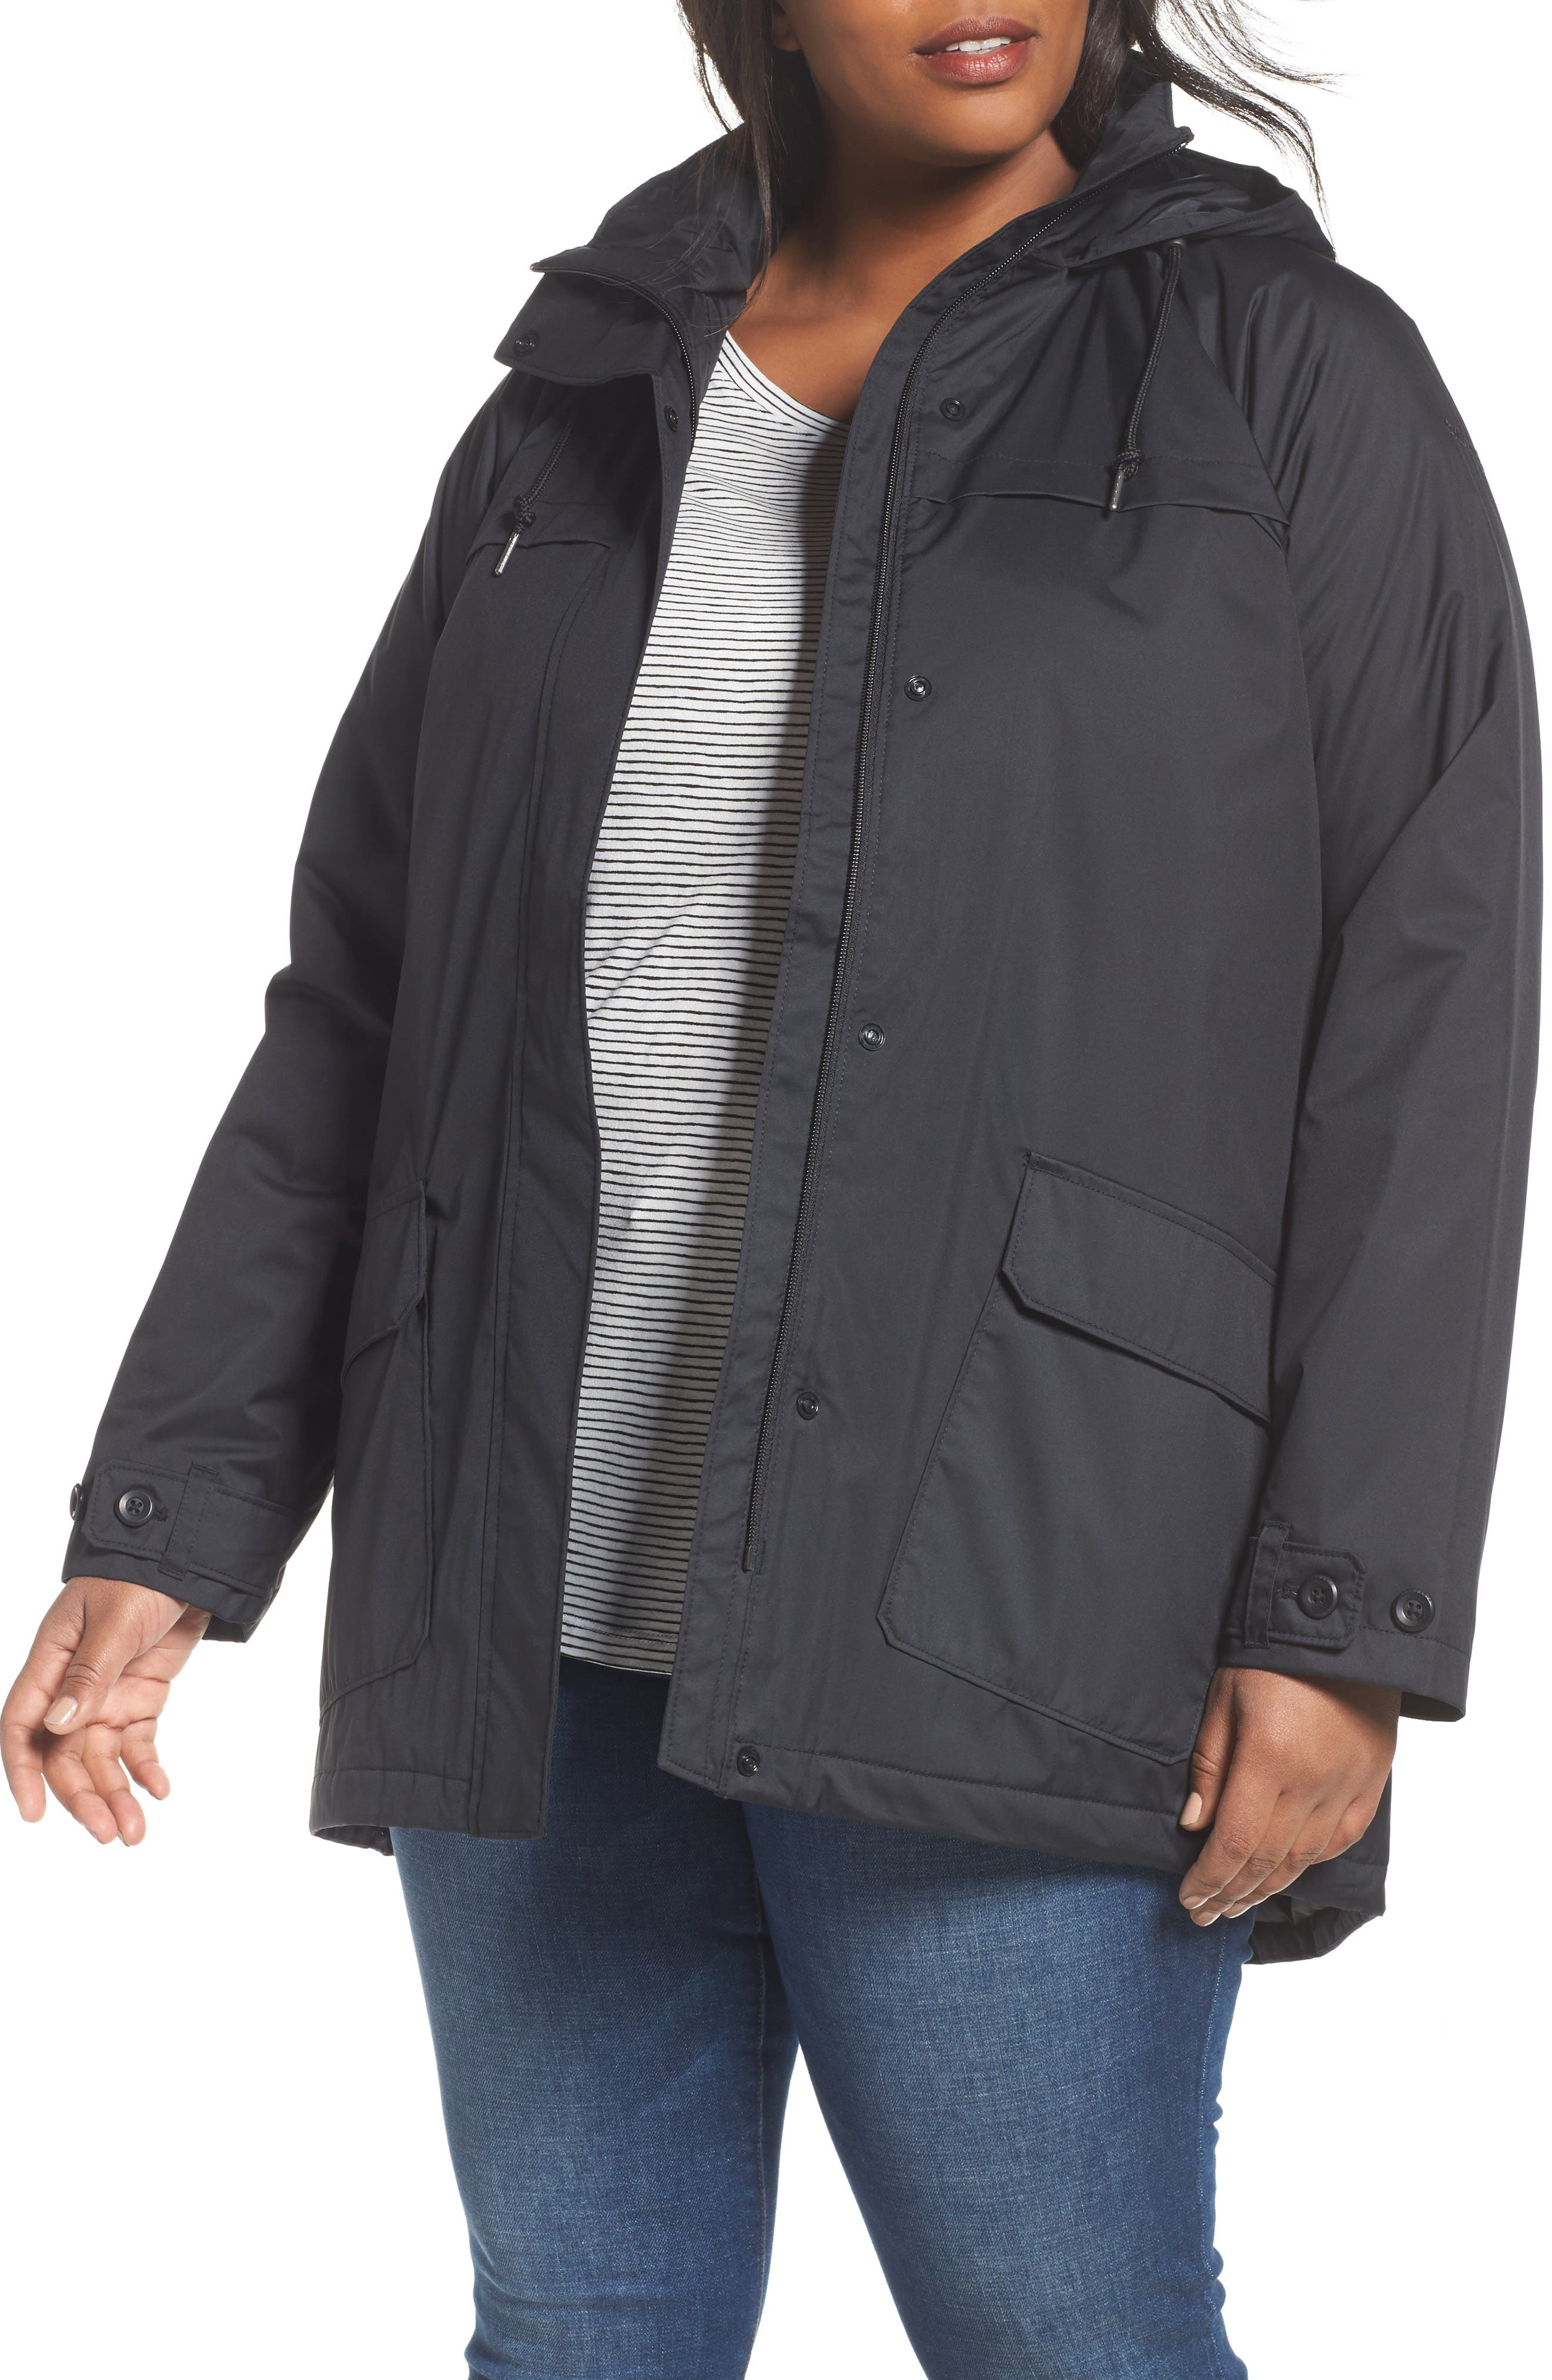 Alternate Image 1 Selected - Columbia Lookout Crest Omni-Tech Waterproof Jacket (Plus Size)